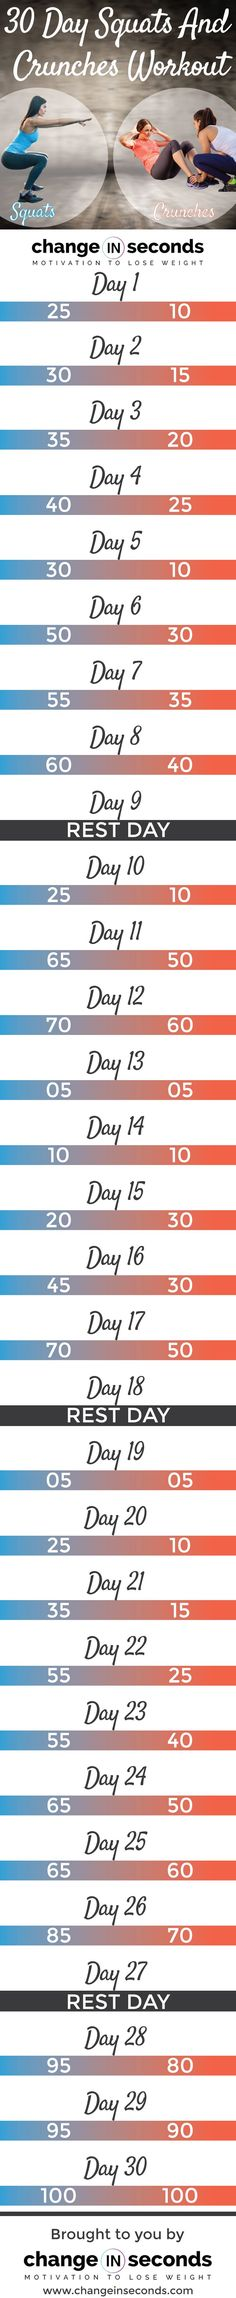 30 Day Squats And Crunches Workout (Download PDF) http://www.changeinseconds.com/30-day-squats-and-crunches-workout/